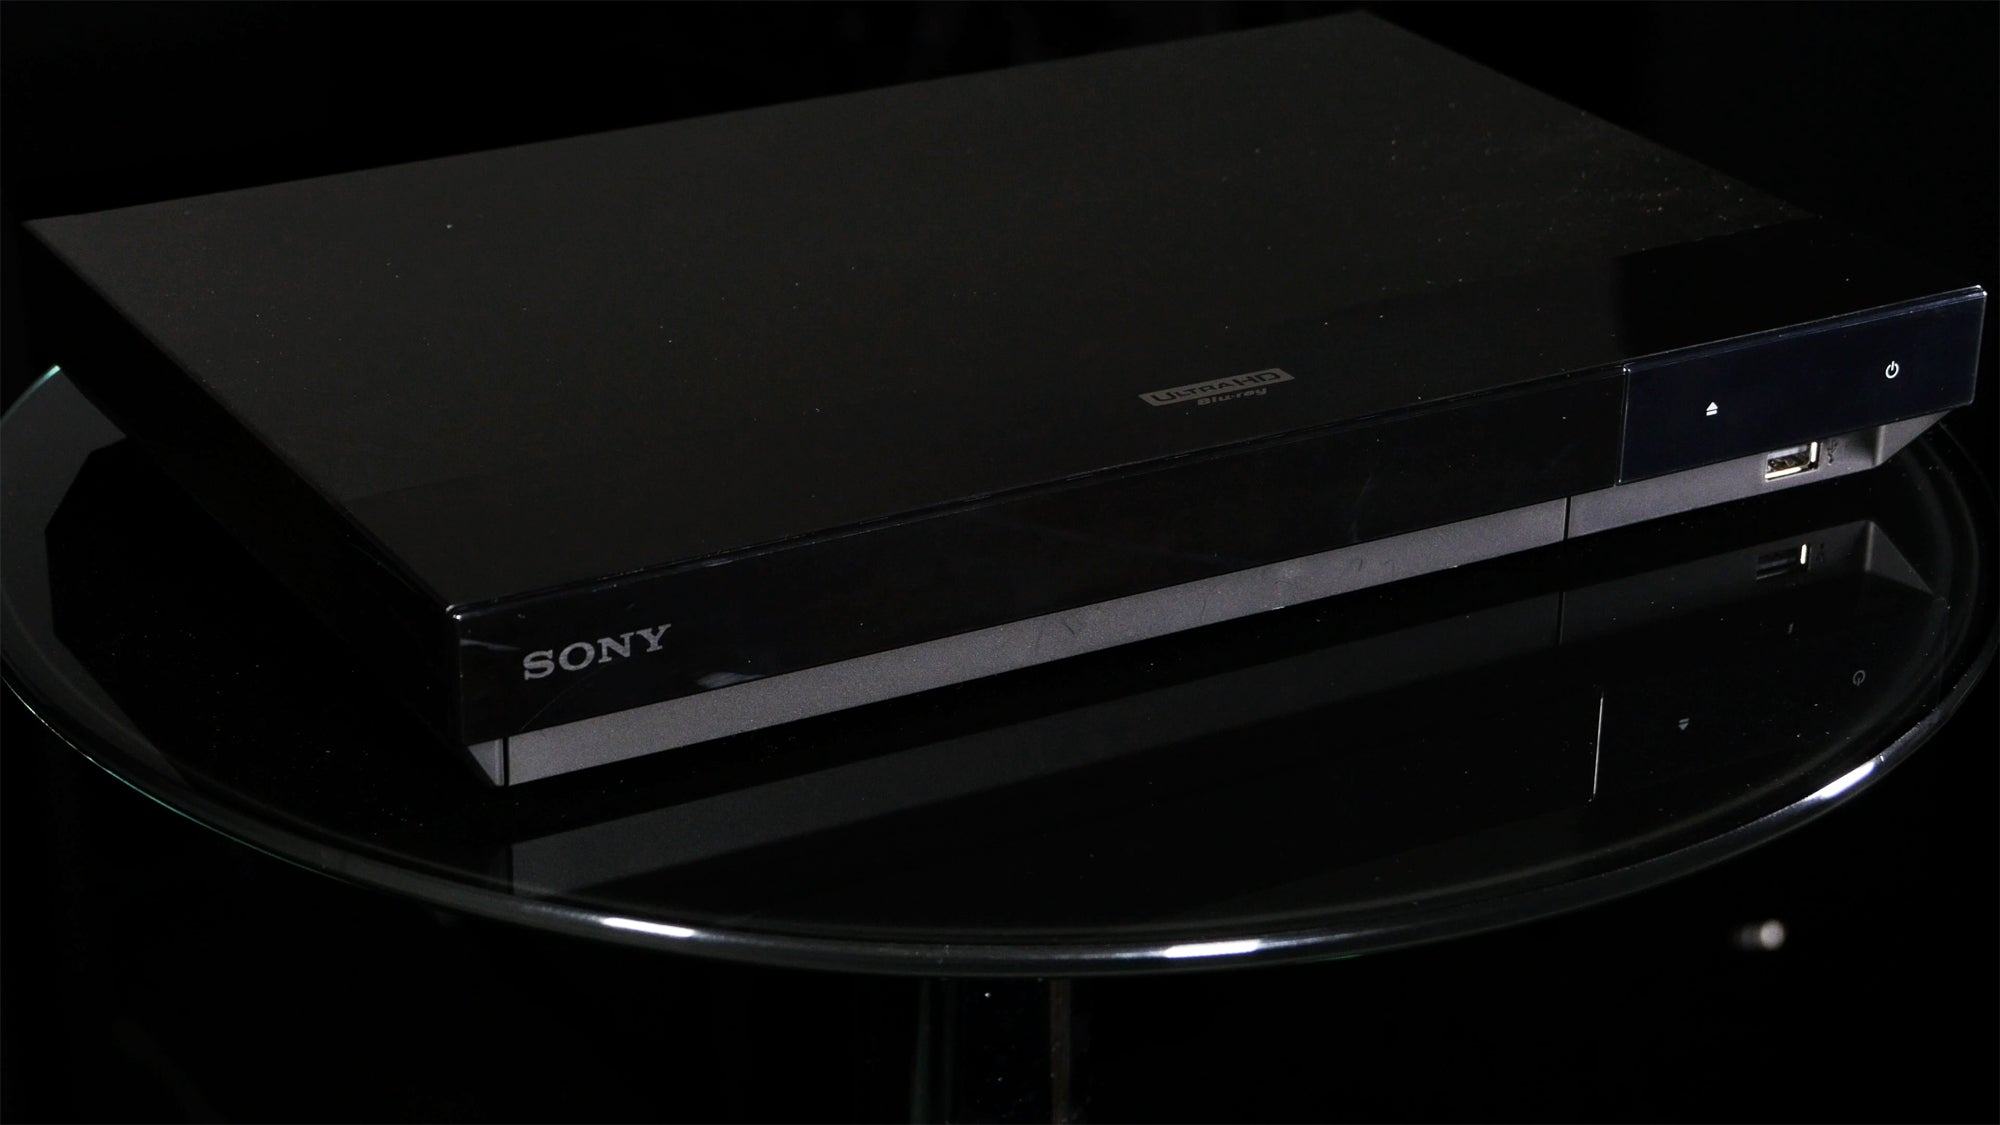 Sony UBP-X700 Review | Trusted Reviews